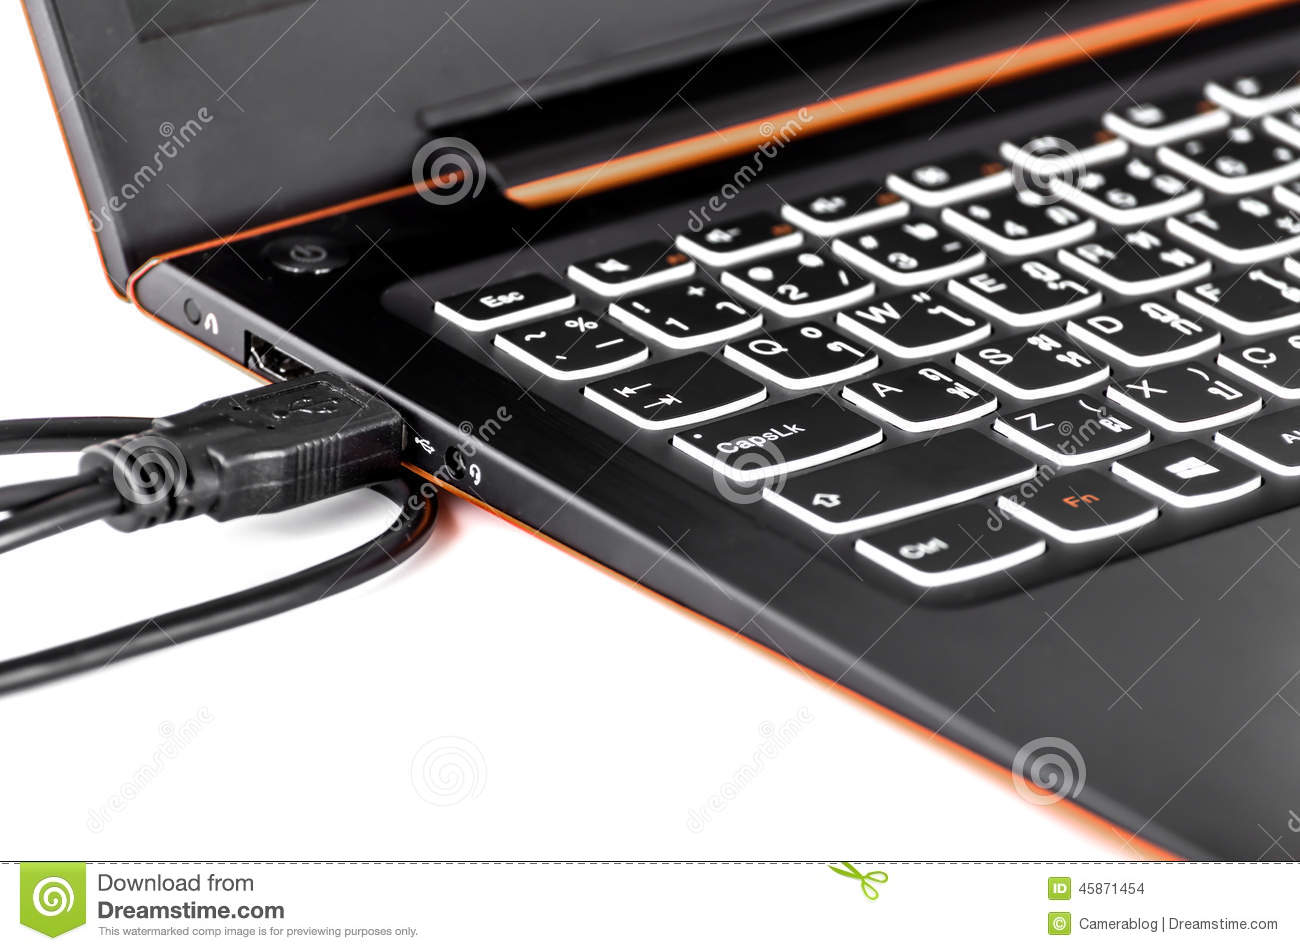 USB cable port attach on computer notebook